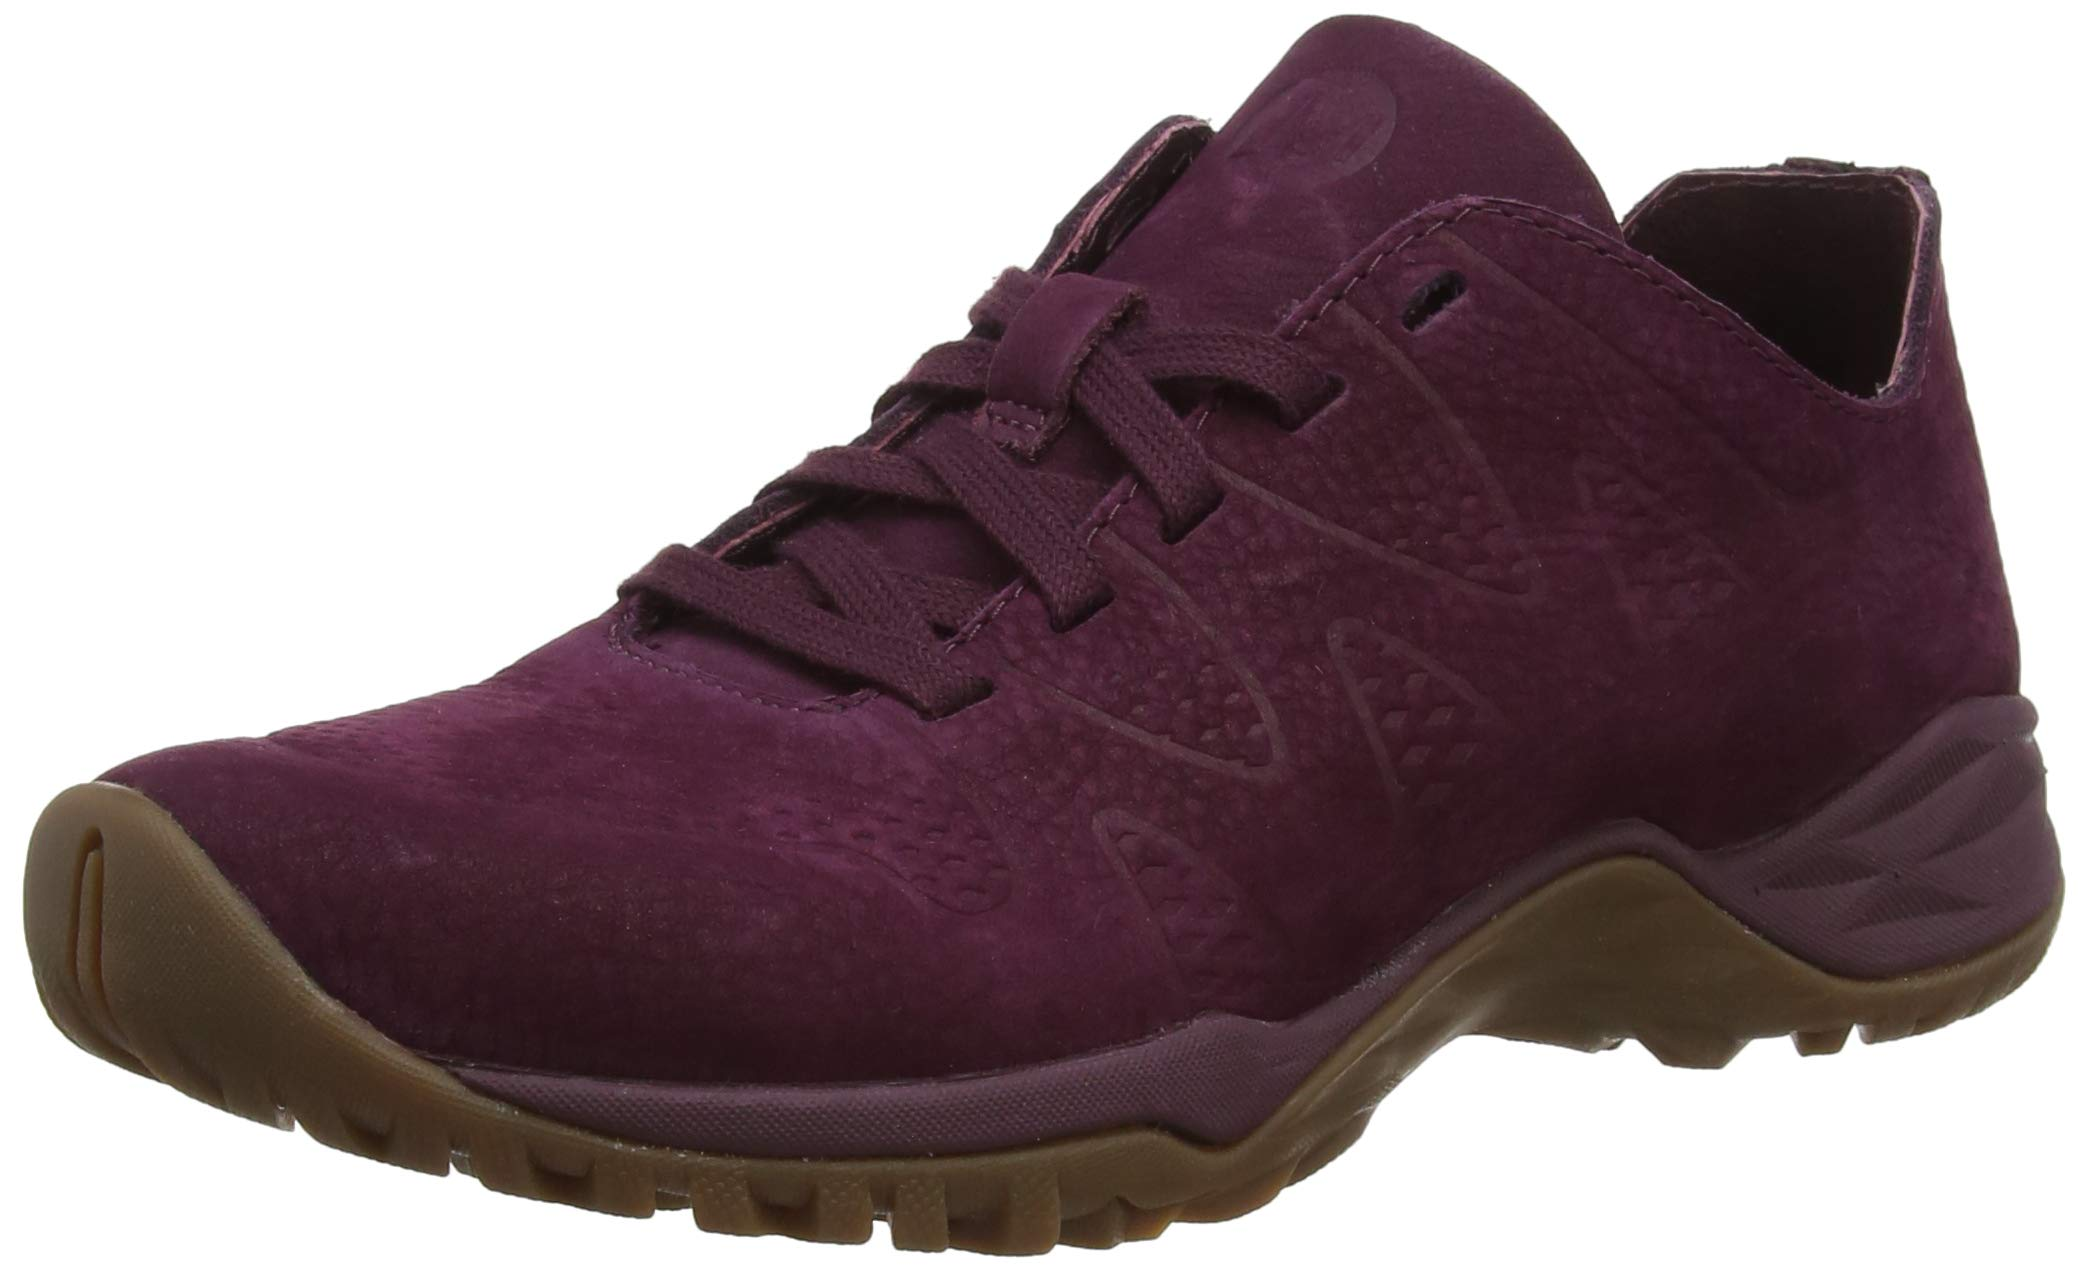 Merrell Women's Siren Guided Lace LTR Q2 Low Rise Hiking